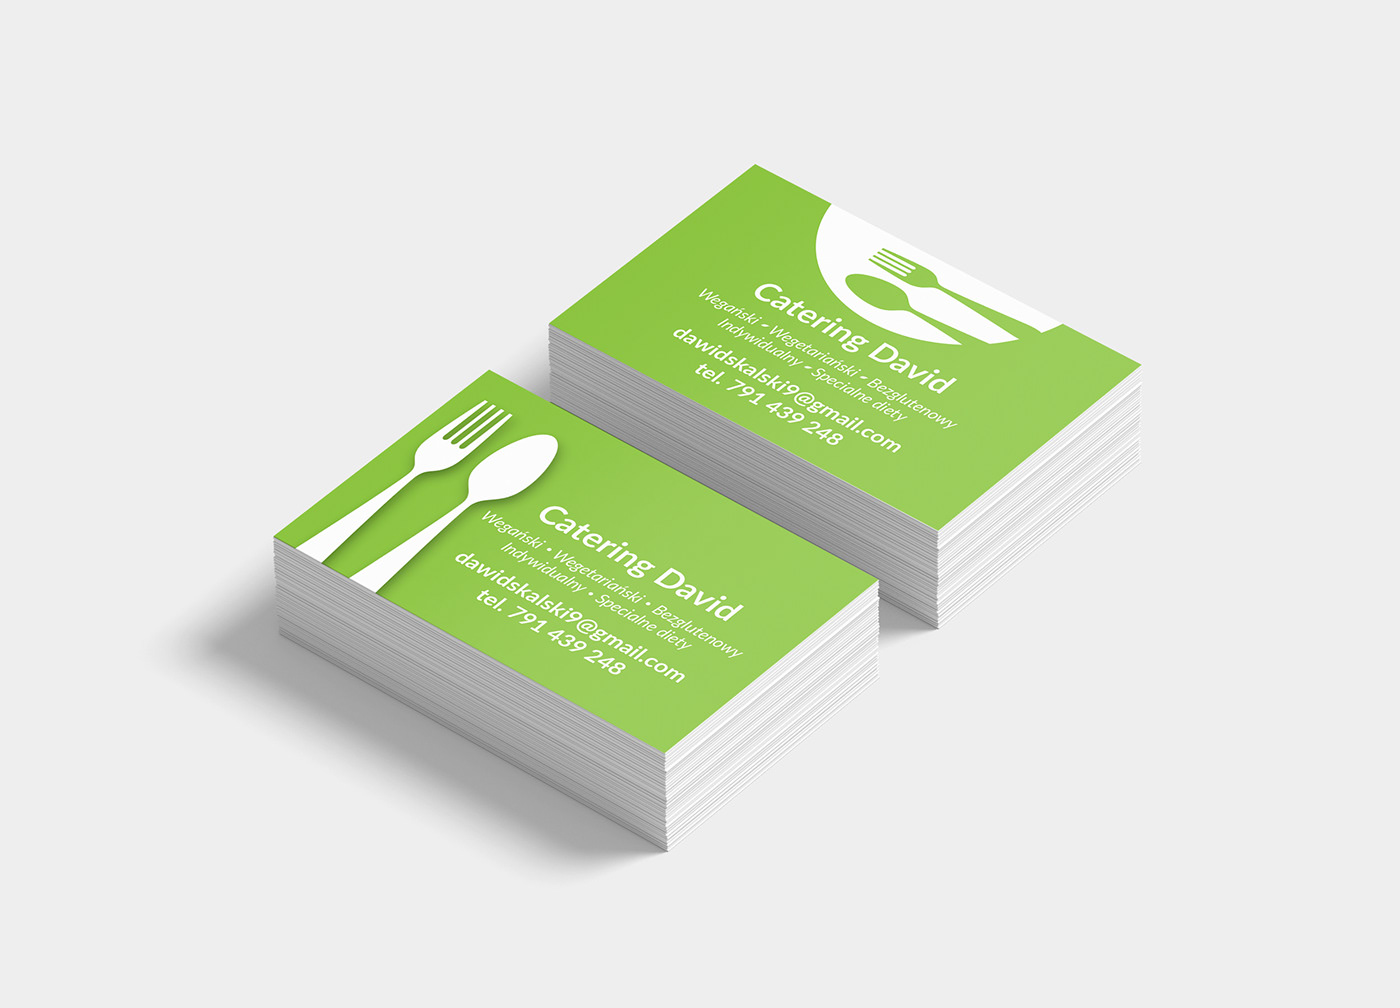 Image may contain: businesscard, book and template